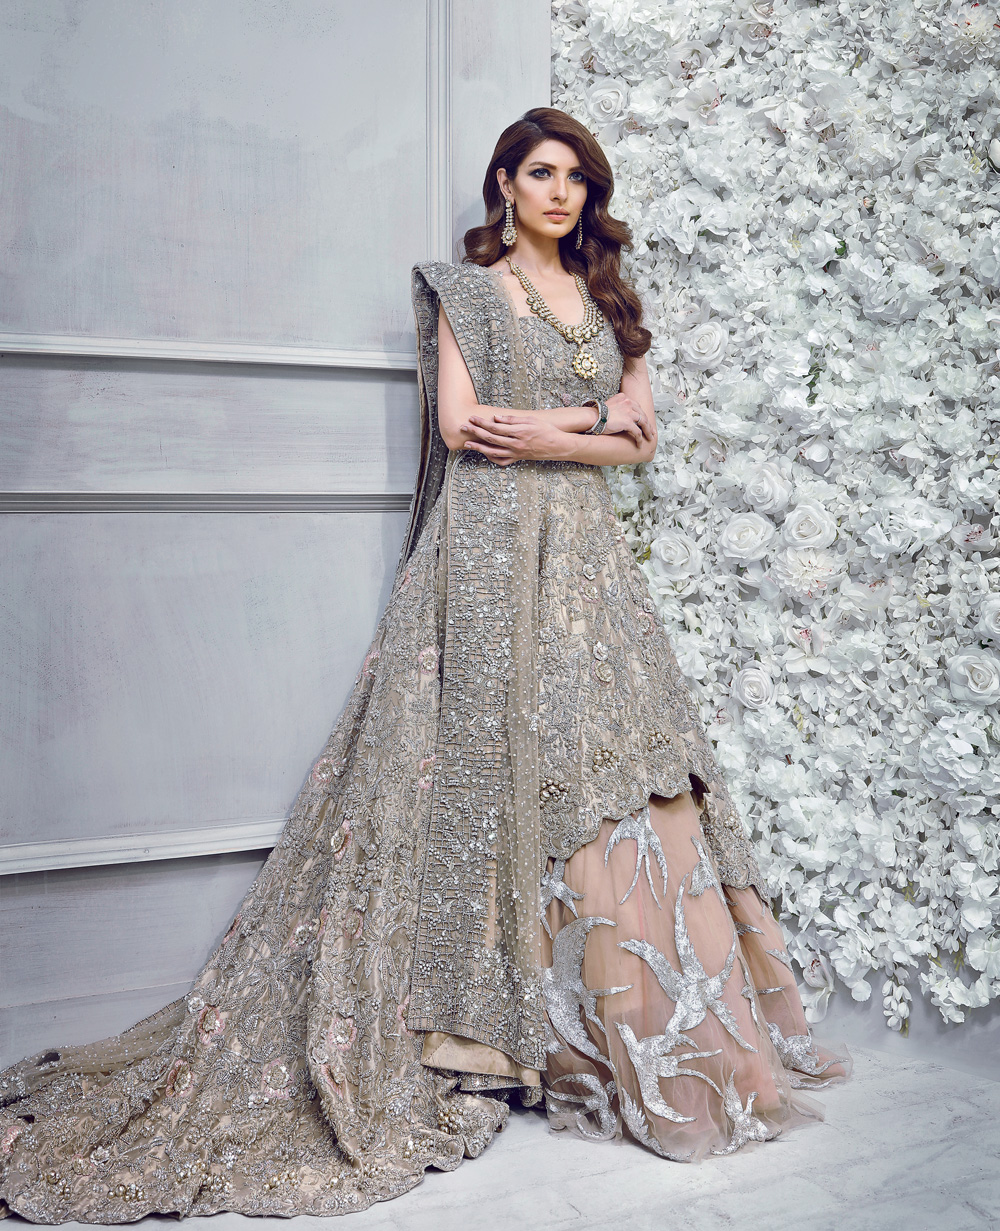 Pakistani Designer Dress Cost And Where To Buy Them In